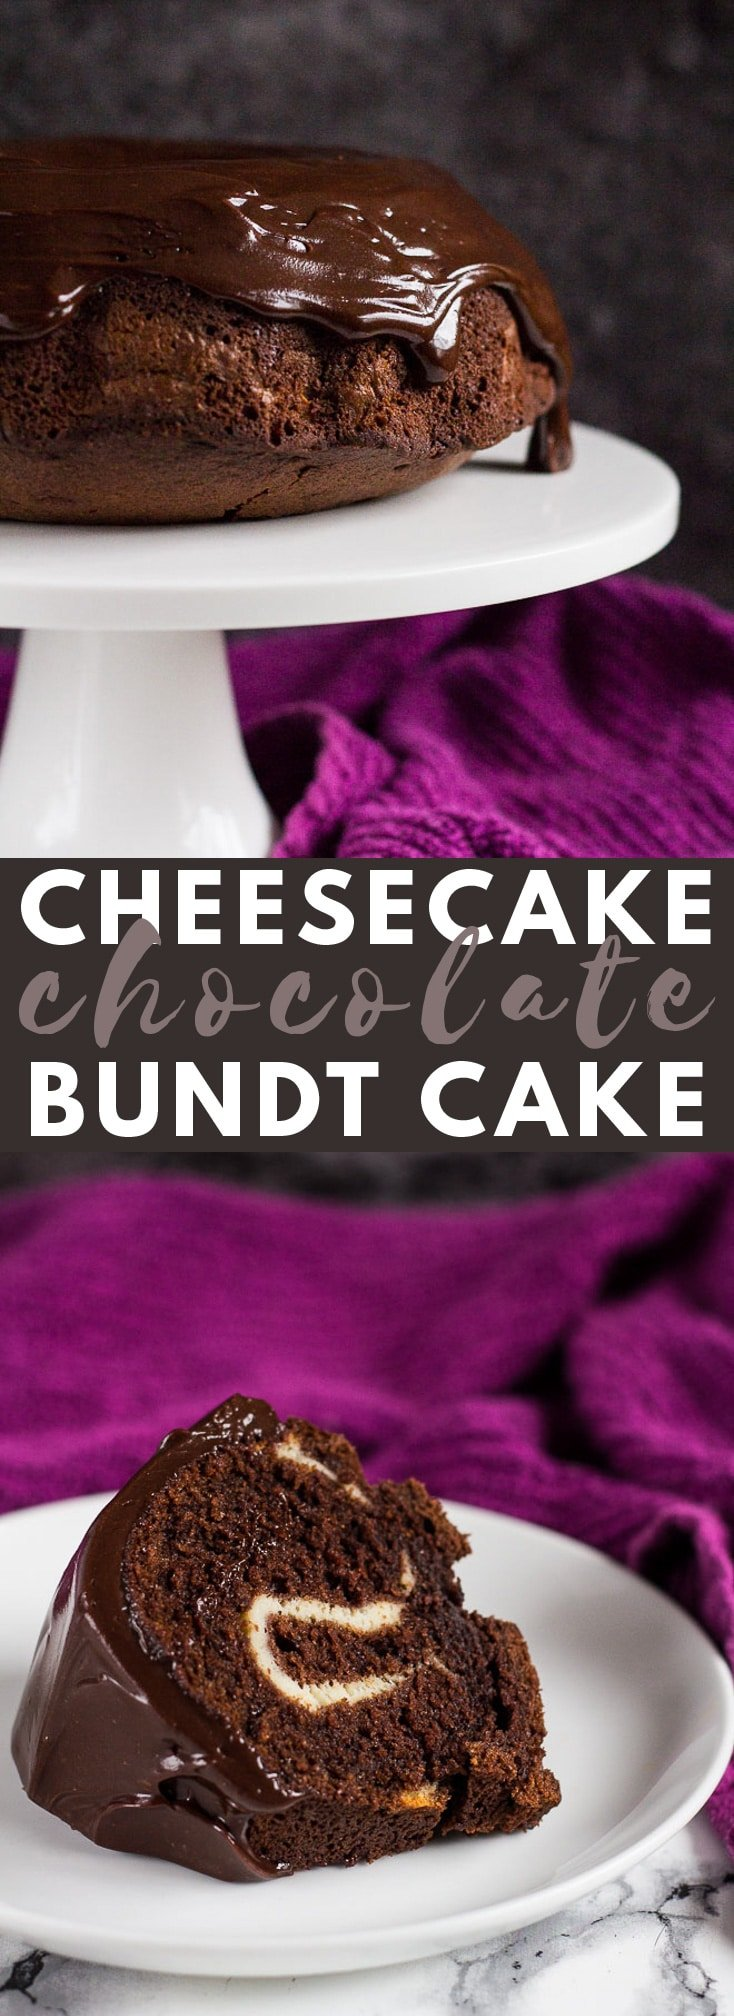 Cheesecake Swirl Chocolate Bundt Cake - Deliciously moist and fluffy chocolate Bundt cake, swirled with a thick and creamy vanilla cheesecake centre! #chocolatecake #bundtcake #cakerecipes